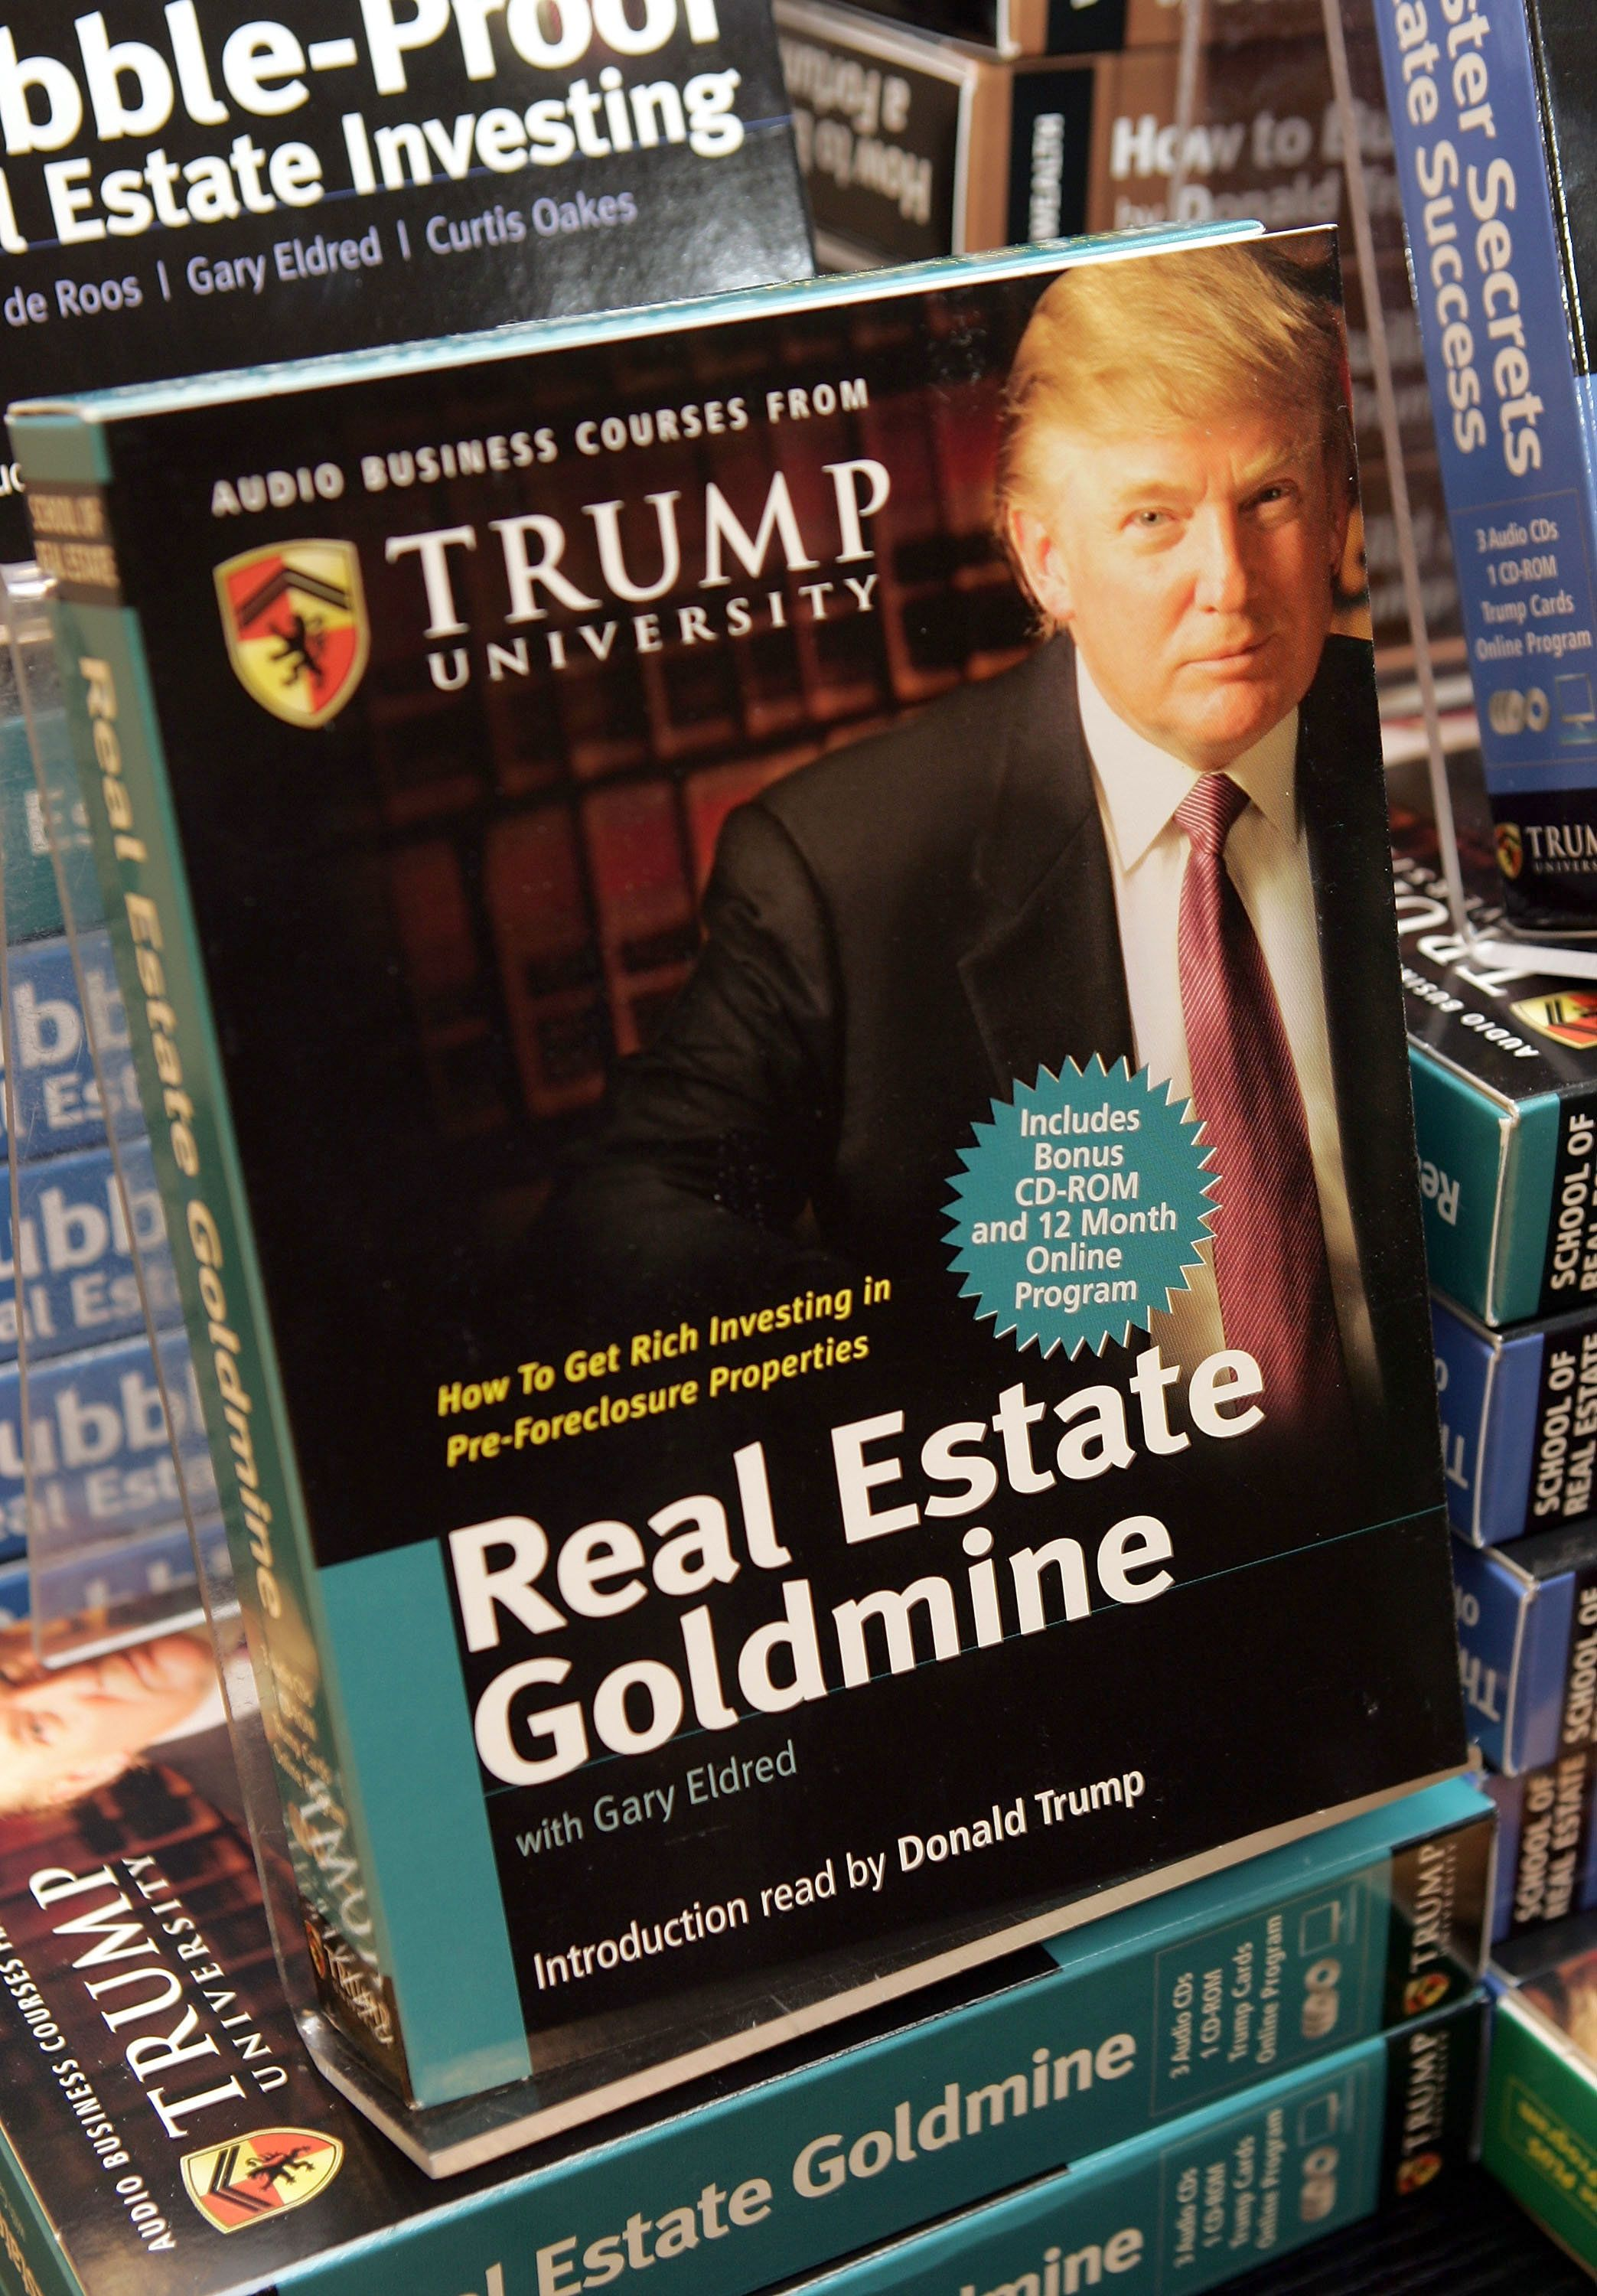 Trump Scammed Inexperienced Investors Through Endorsement Deals, Lawsuit Claims